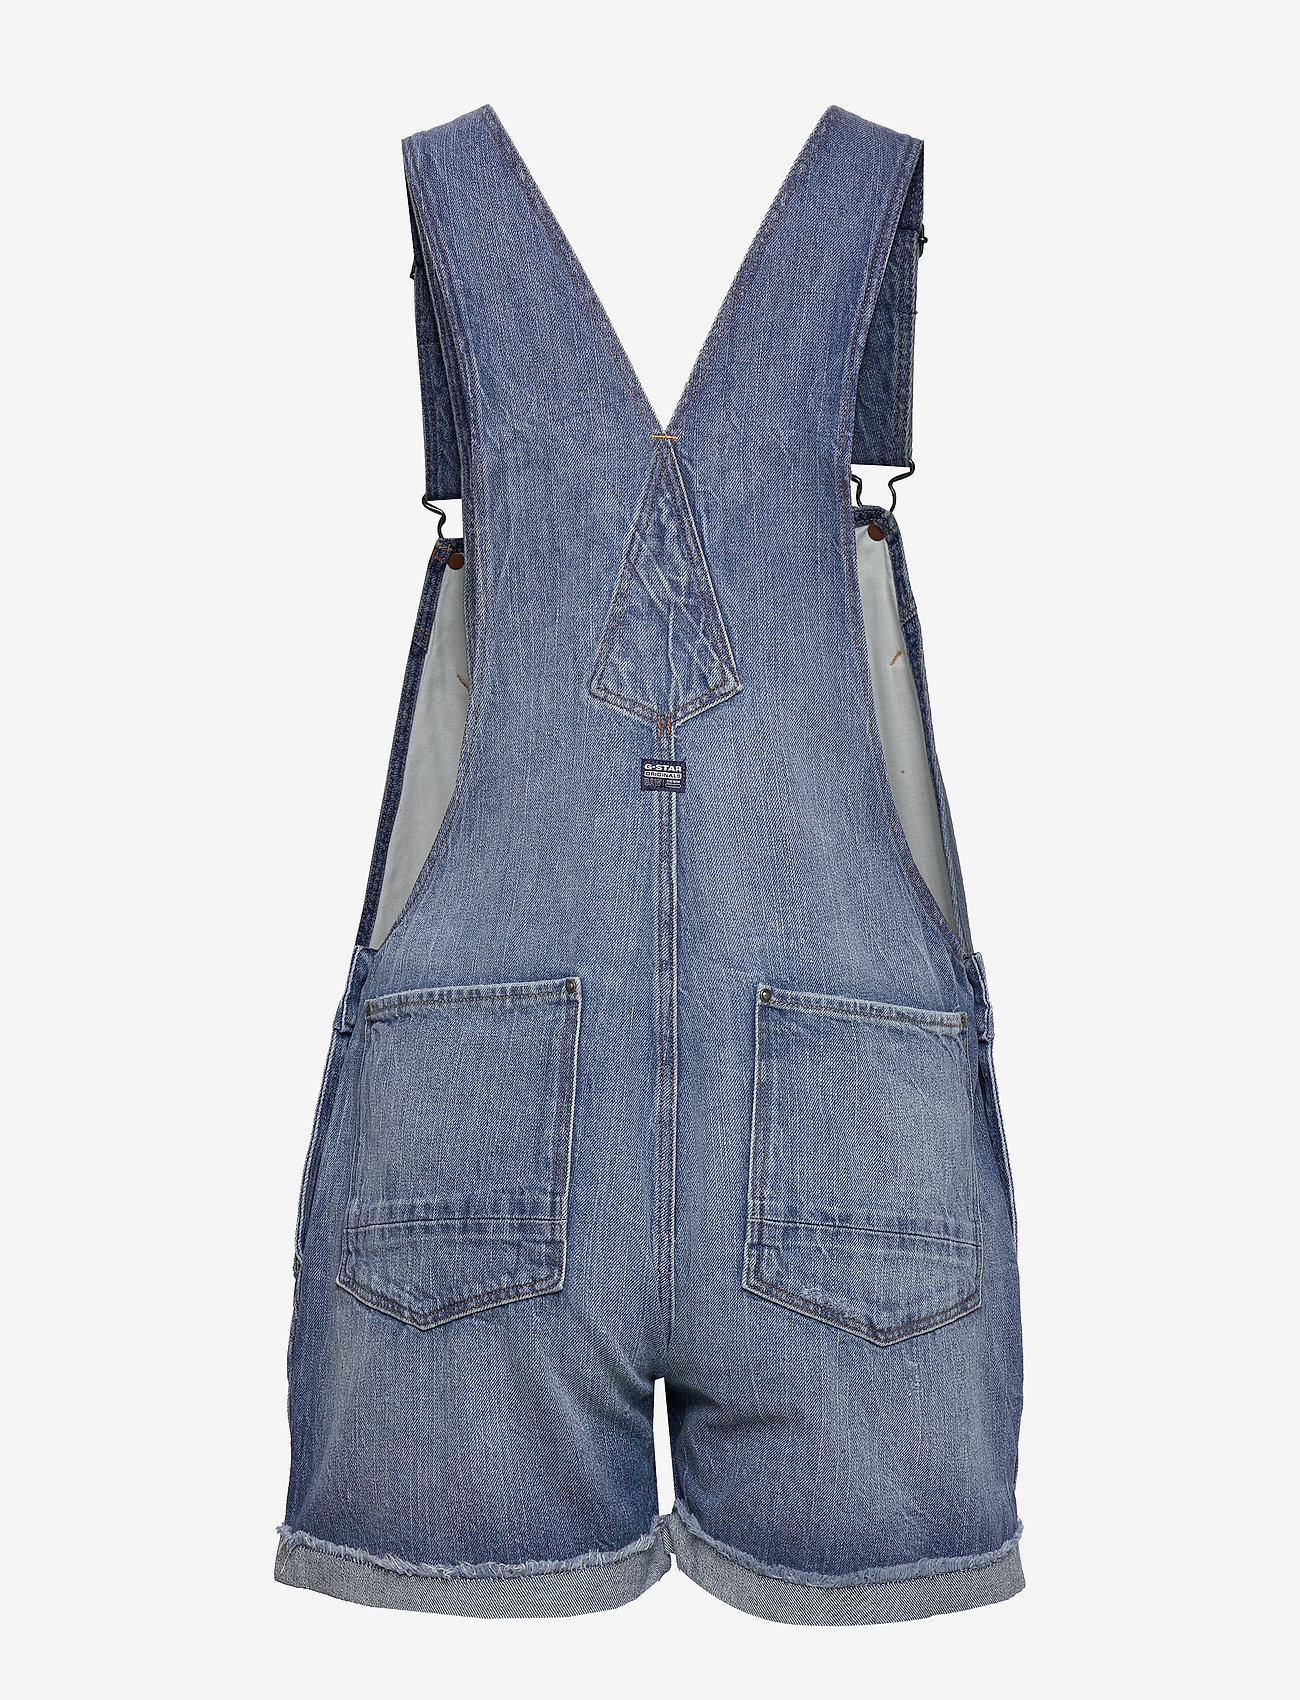 G-star RAW - Faeroes bf Short Overall rp tu Wmn - jumpsuits - faded ripped shore - 1